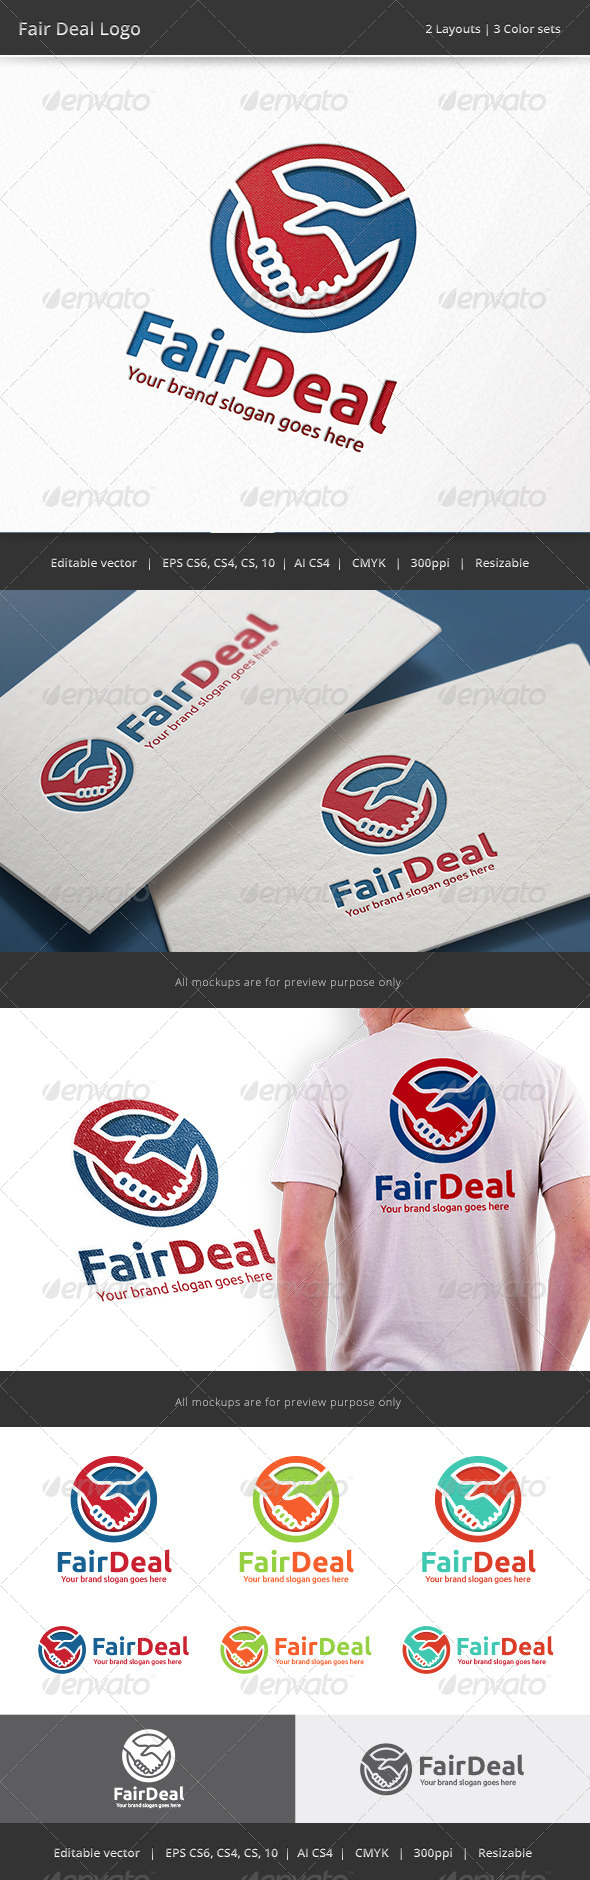 GraphicRiver Fair Deal Logo 8595703